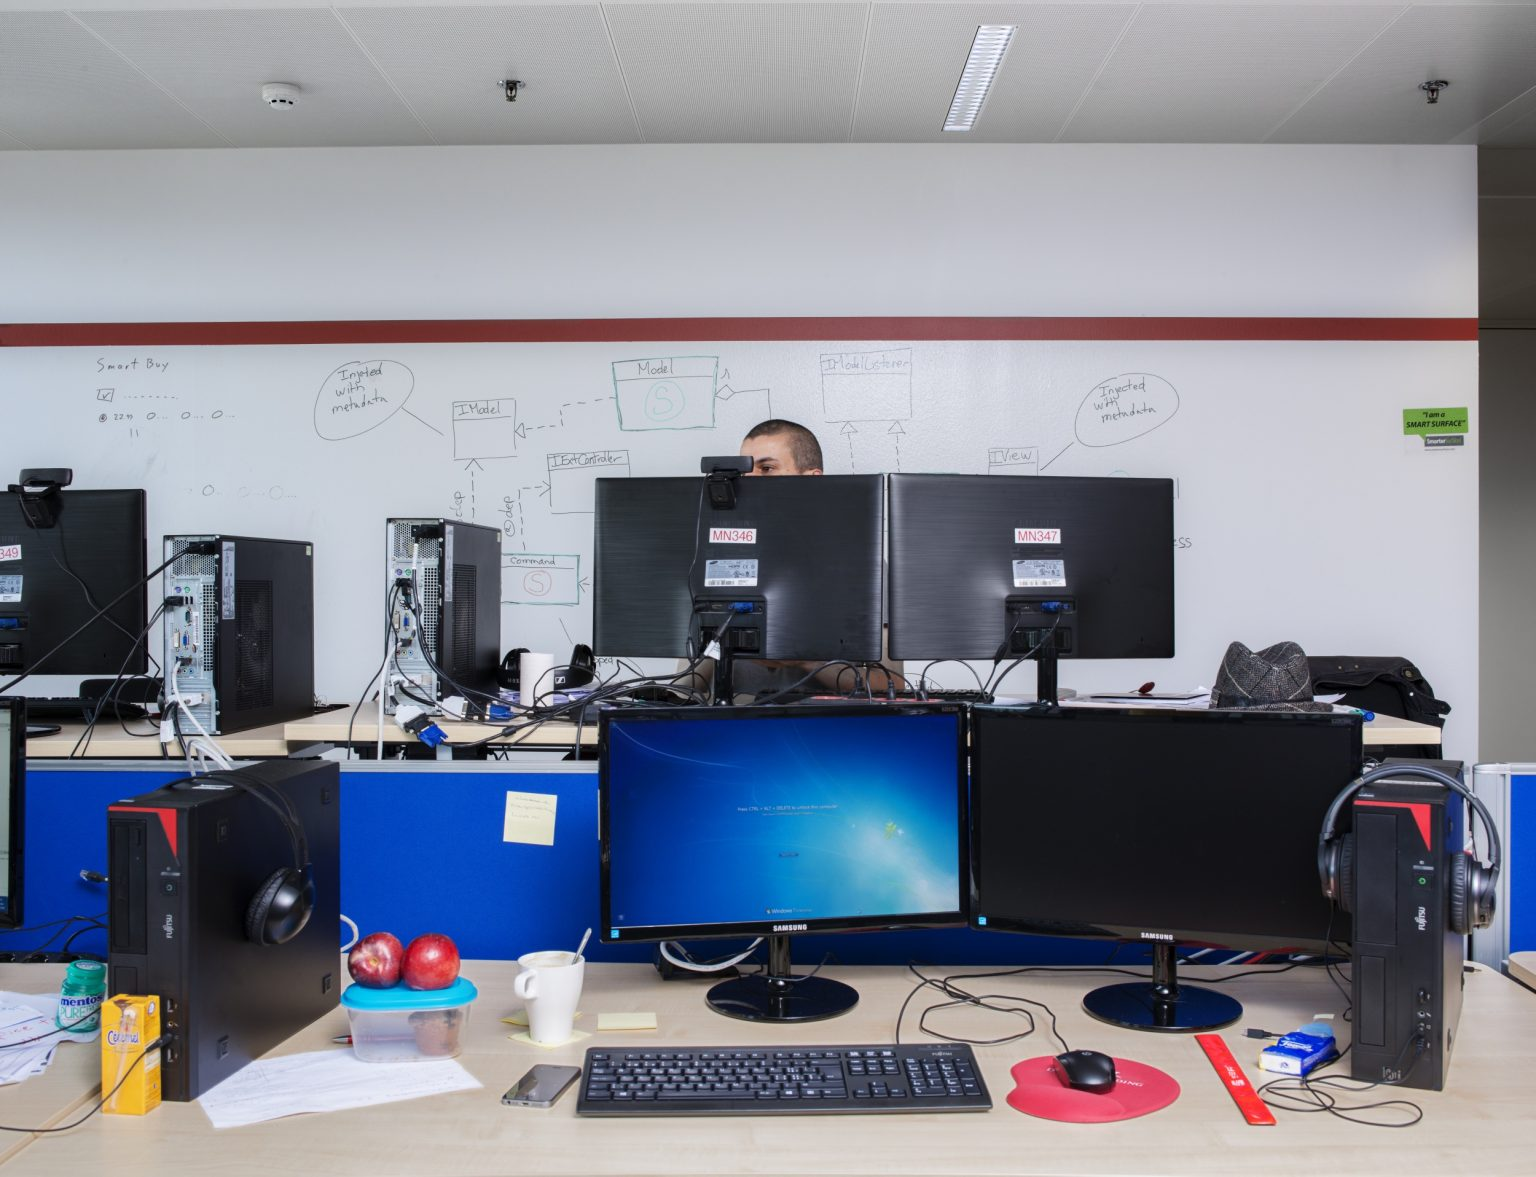 Interior view of the R&D department in the headquarter's office of Live Jasmine. Founded in Hungary in 2001, Live Jasmin is the largest platform provider in the Video chat industry: with 10,000 models online which can earn up to 50,000 euros per day, the website is ranking number one in the world for earnings, cam operations and number of visitors (35 million per day). Grand Duchy of Luxembourg, Luxembourg City, 2016